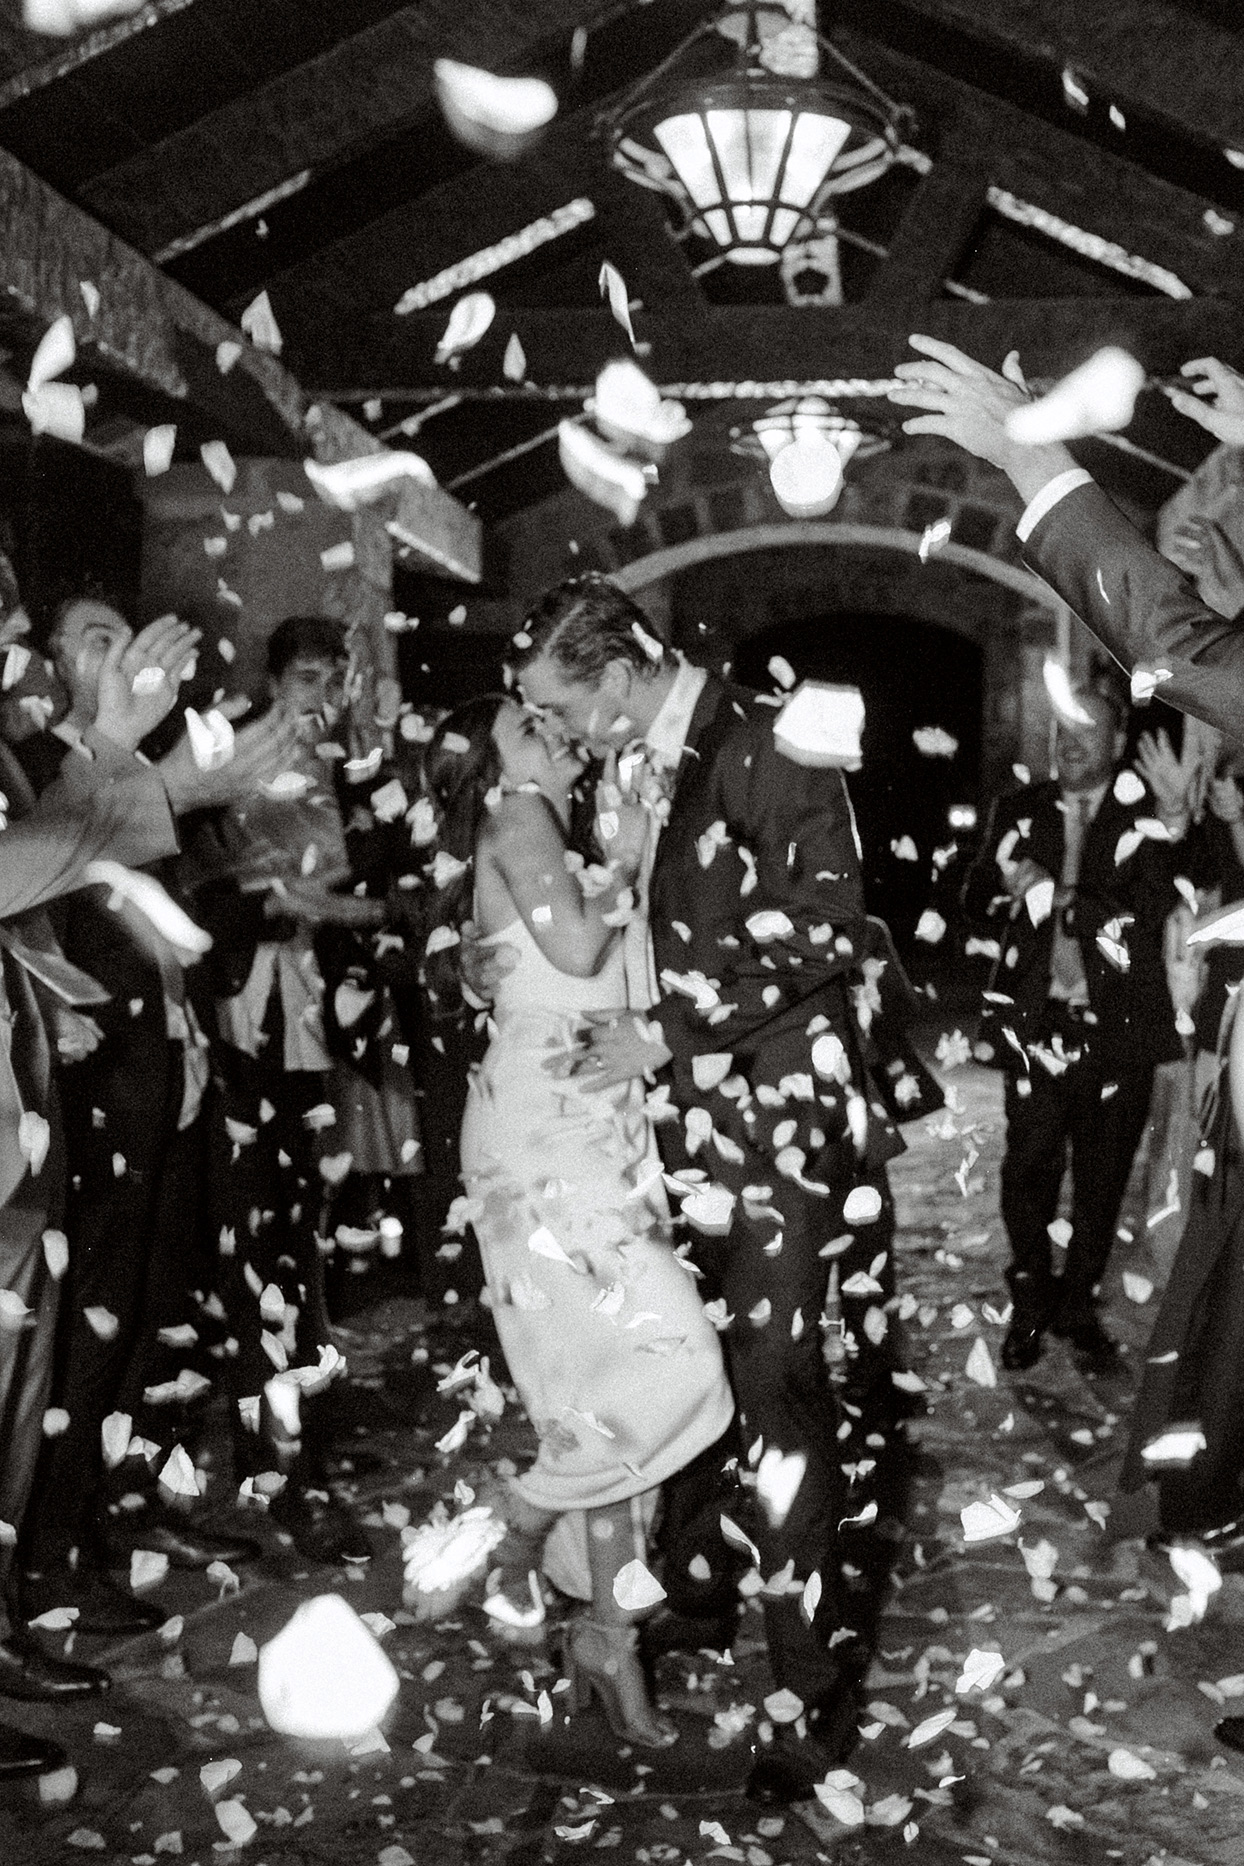 bride and groom embrace under shower of confetti thrown by guests